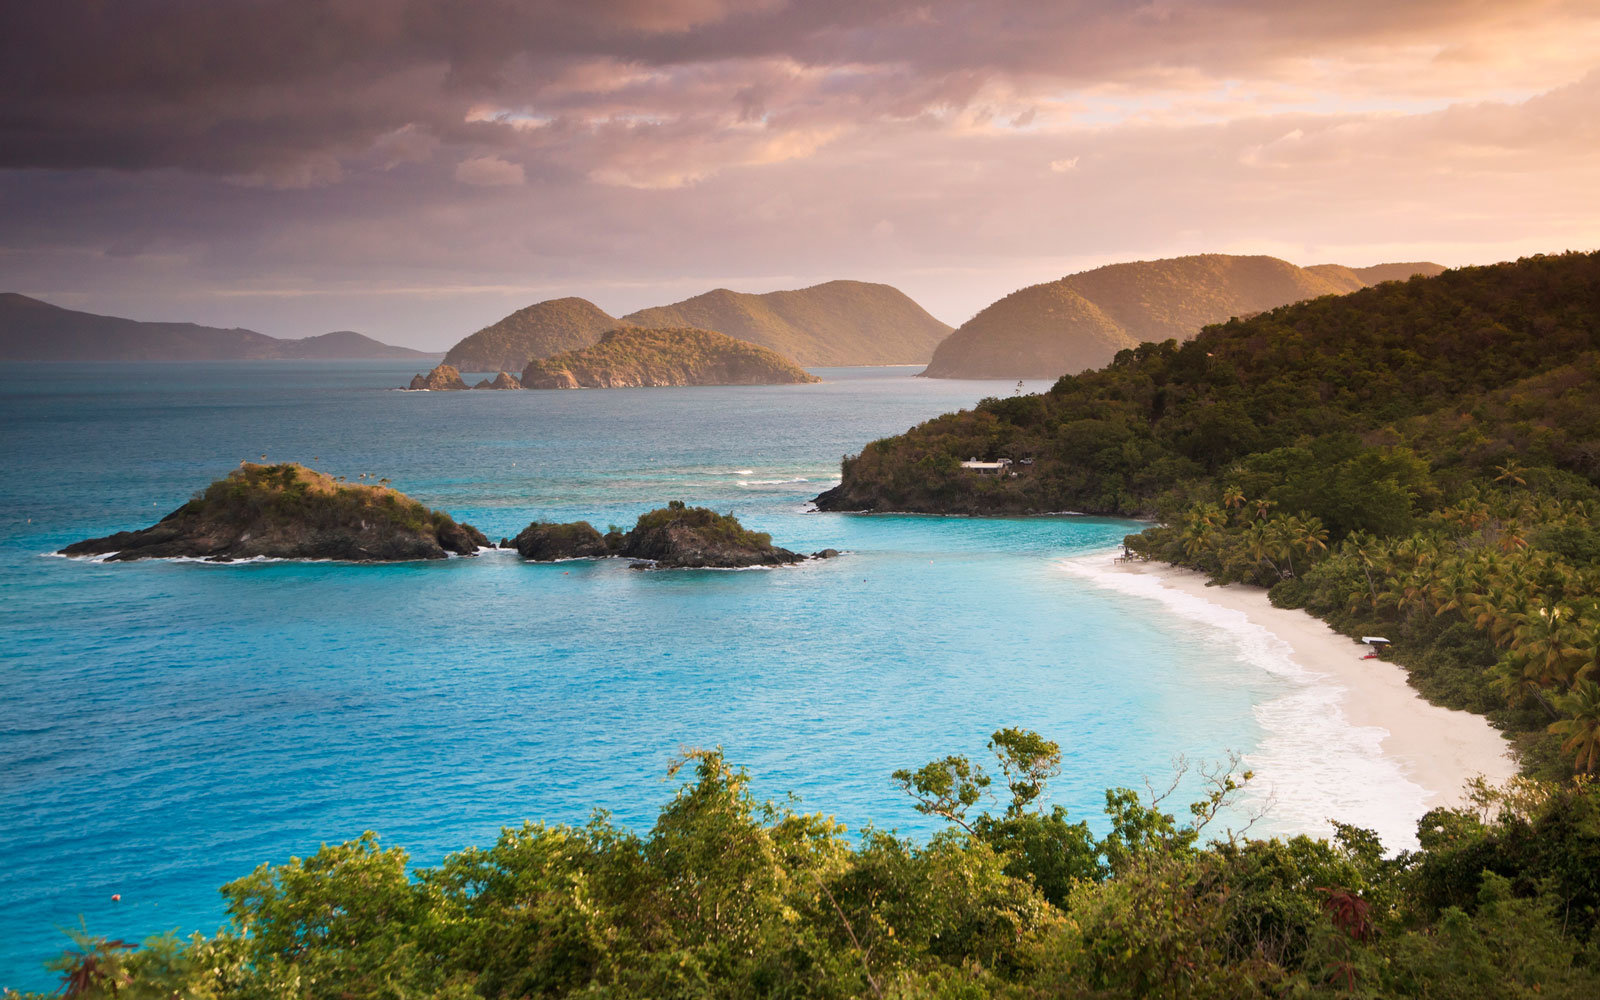 Visiting the U.S Virgin Islands